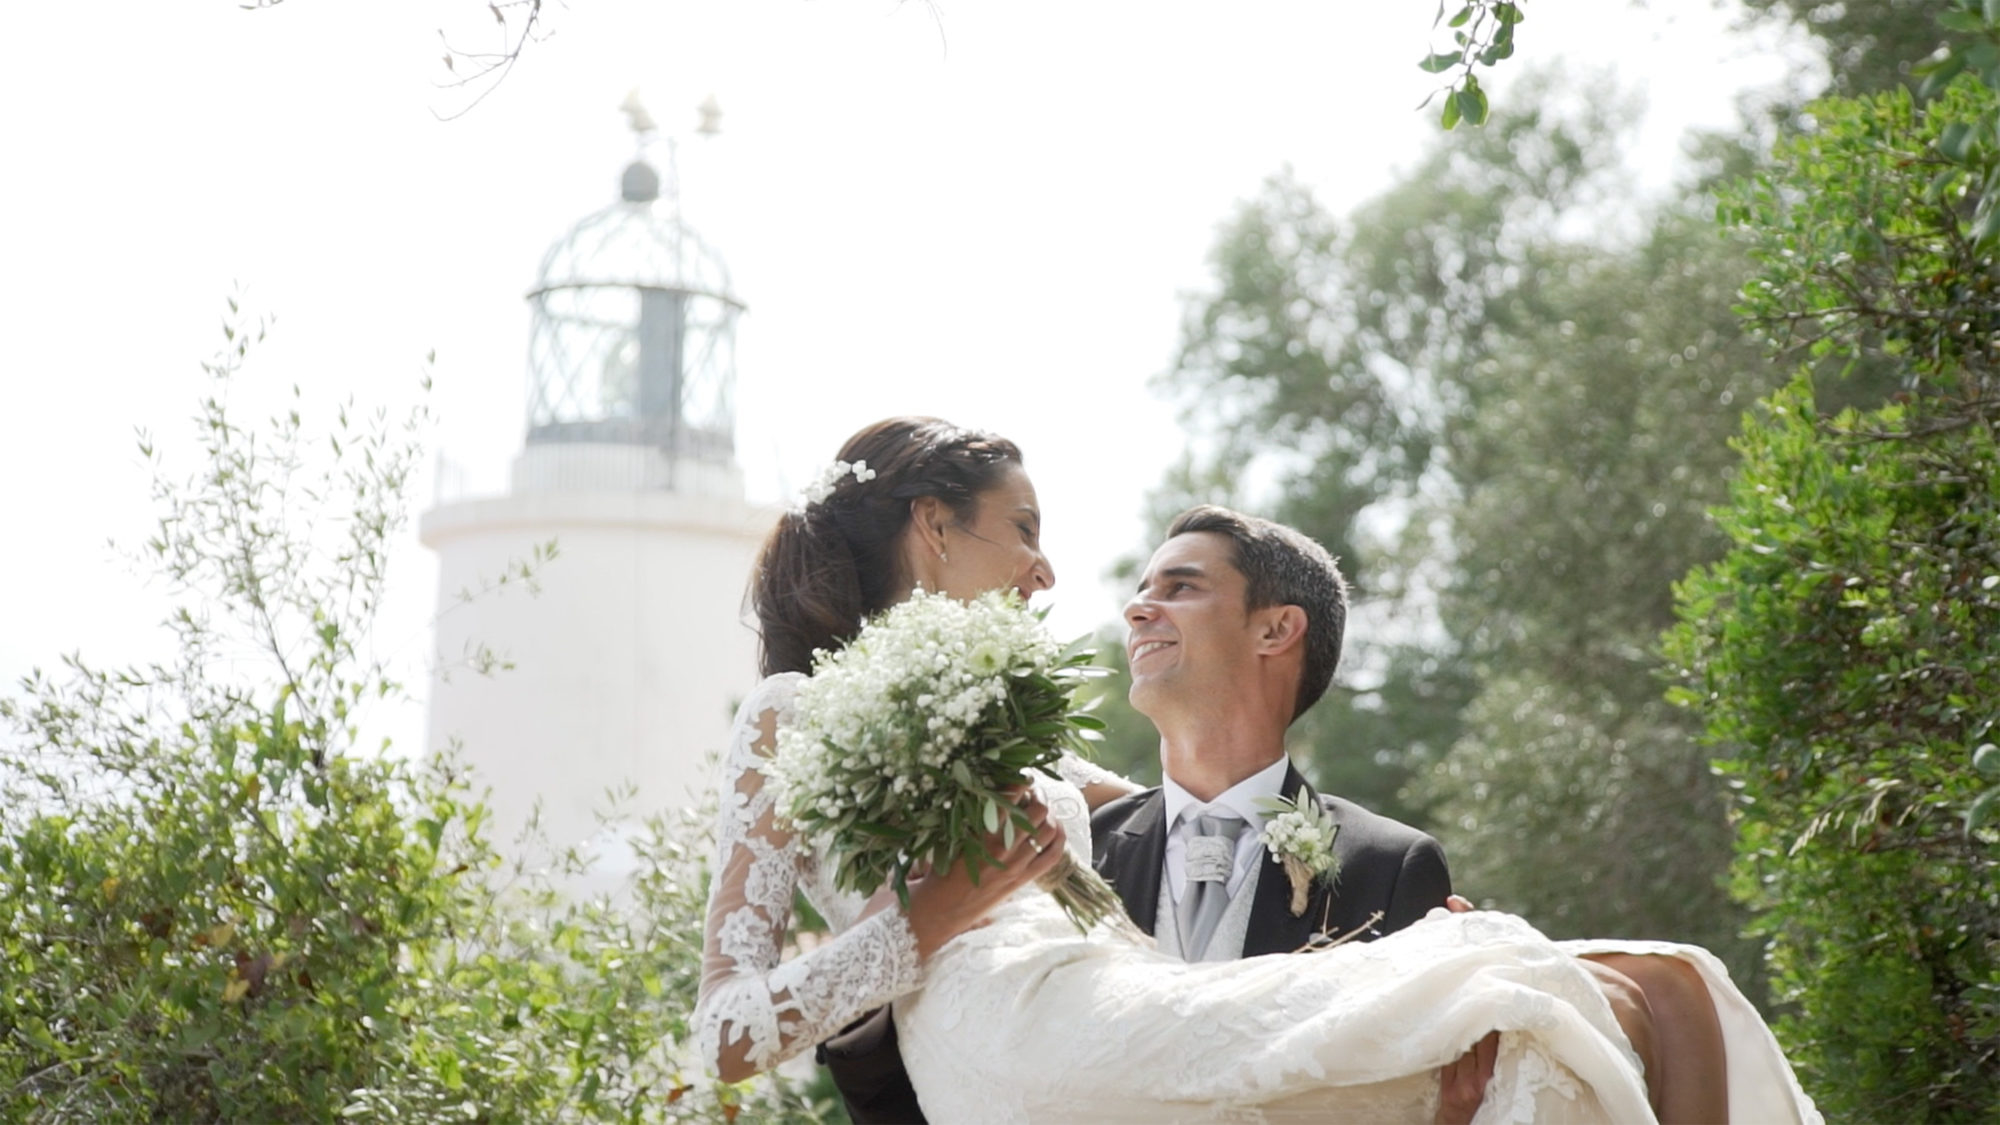 Miradas de amor entre recién casados con faro de fondo. Love lookings between newly wed couple by a lighthouse.